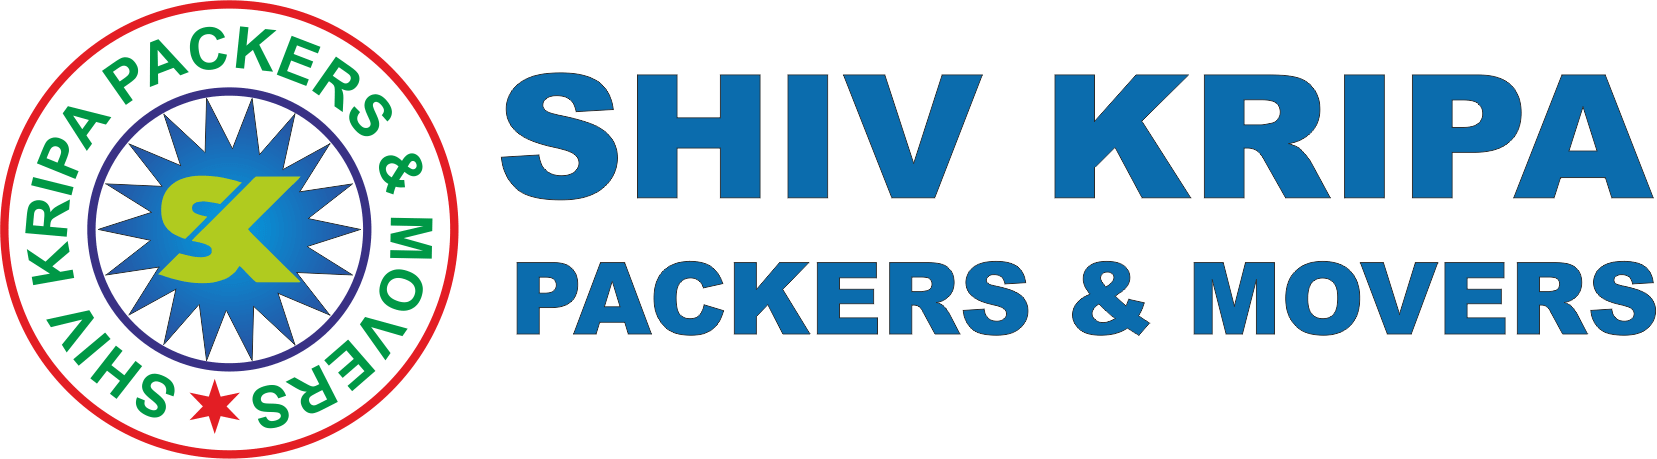 shiv kripa packers and movers bharuch, gujarat